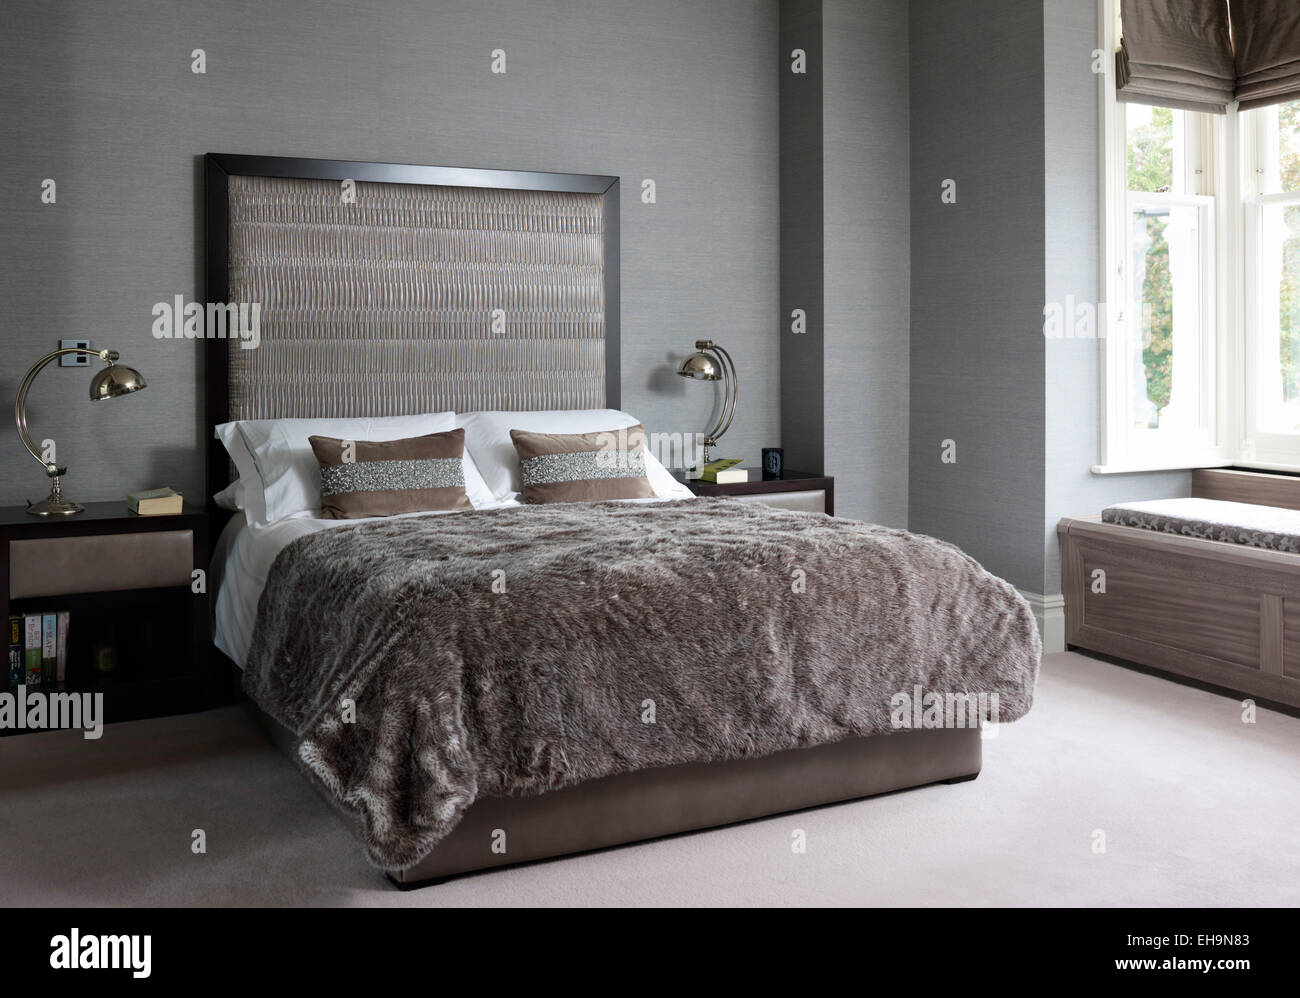 headboards makes pin headboard look double like a love j bed of idea queen for it side this on the s room daybed lil